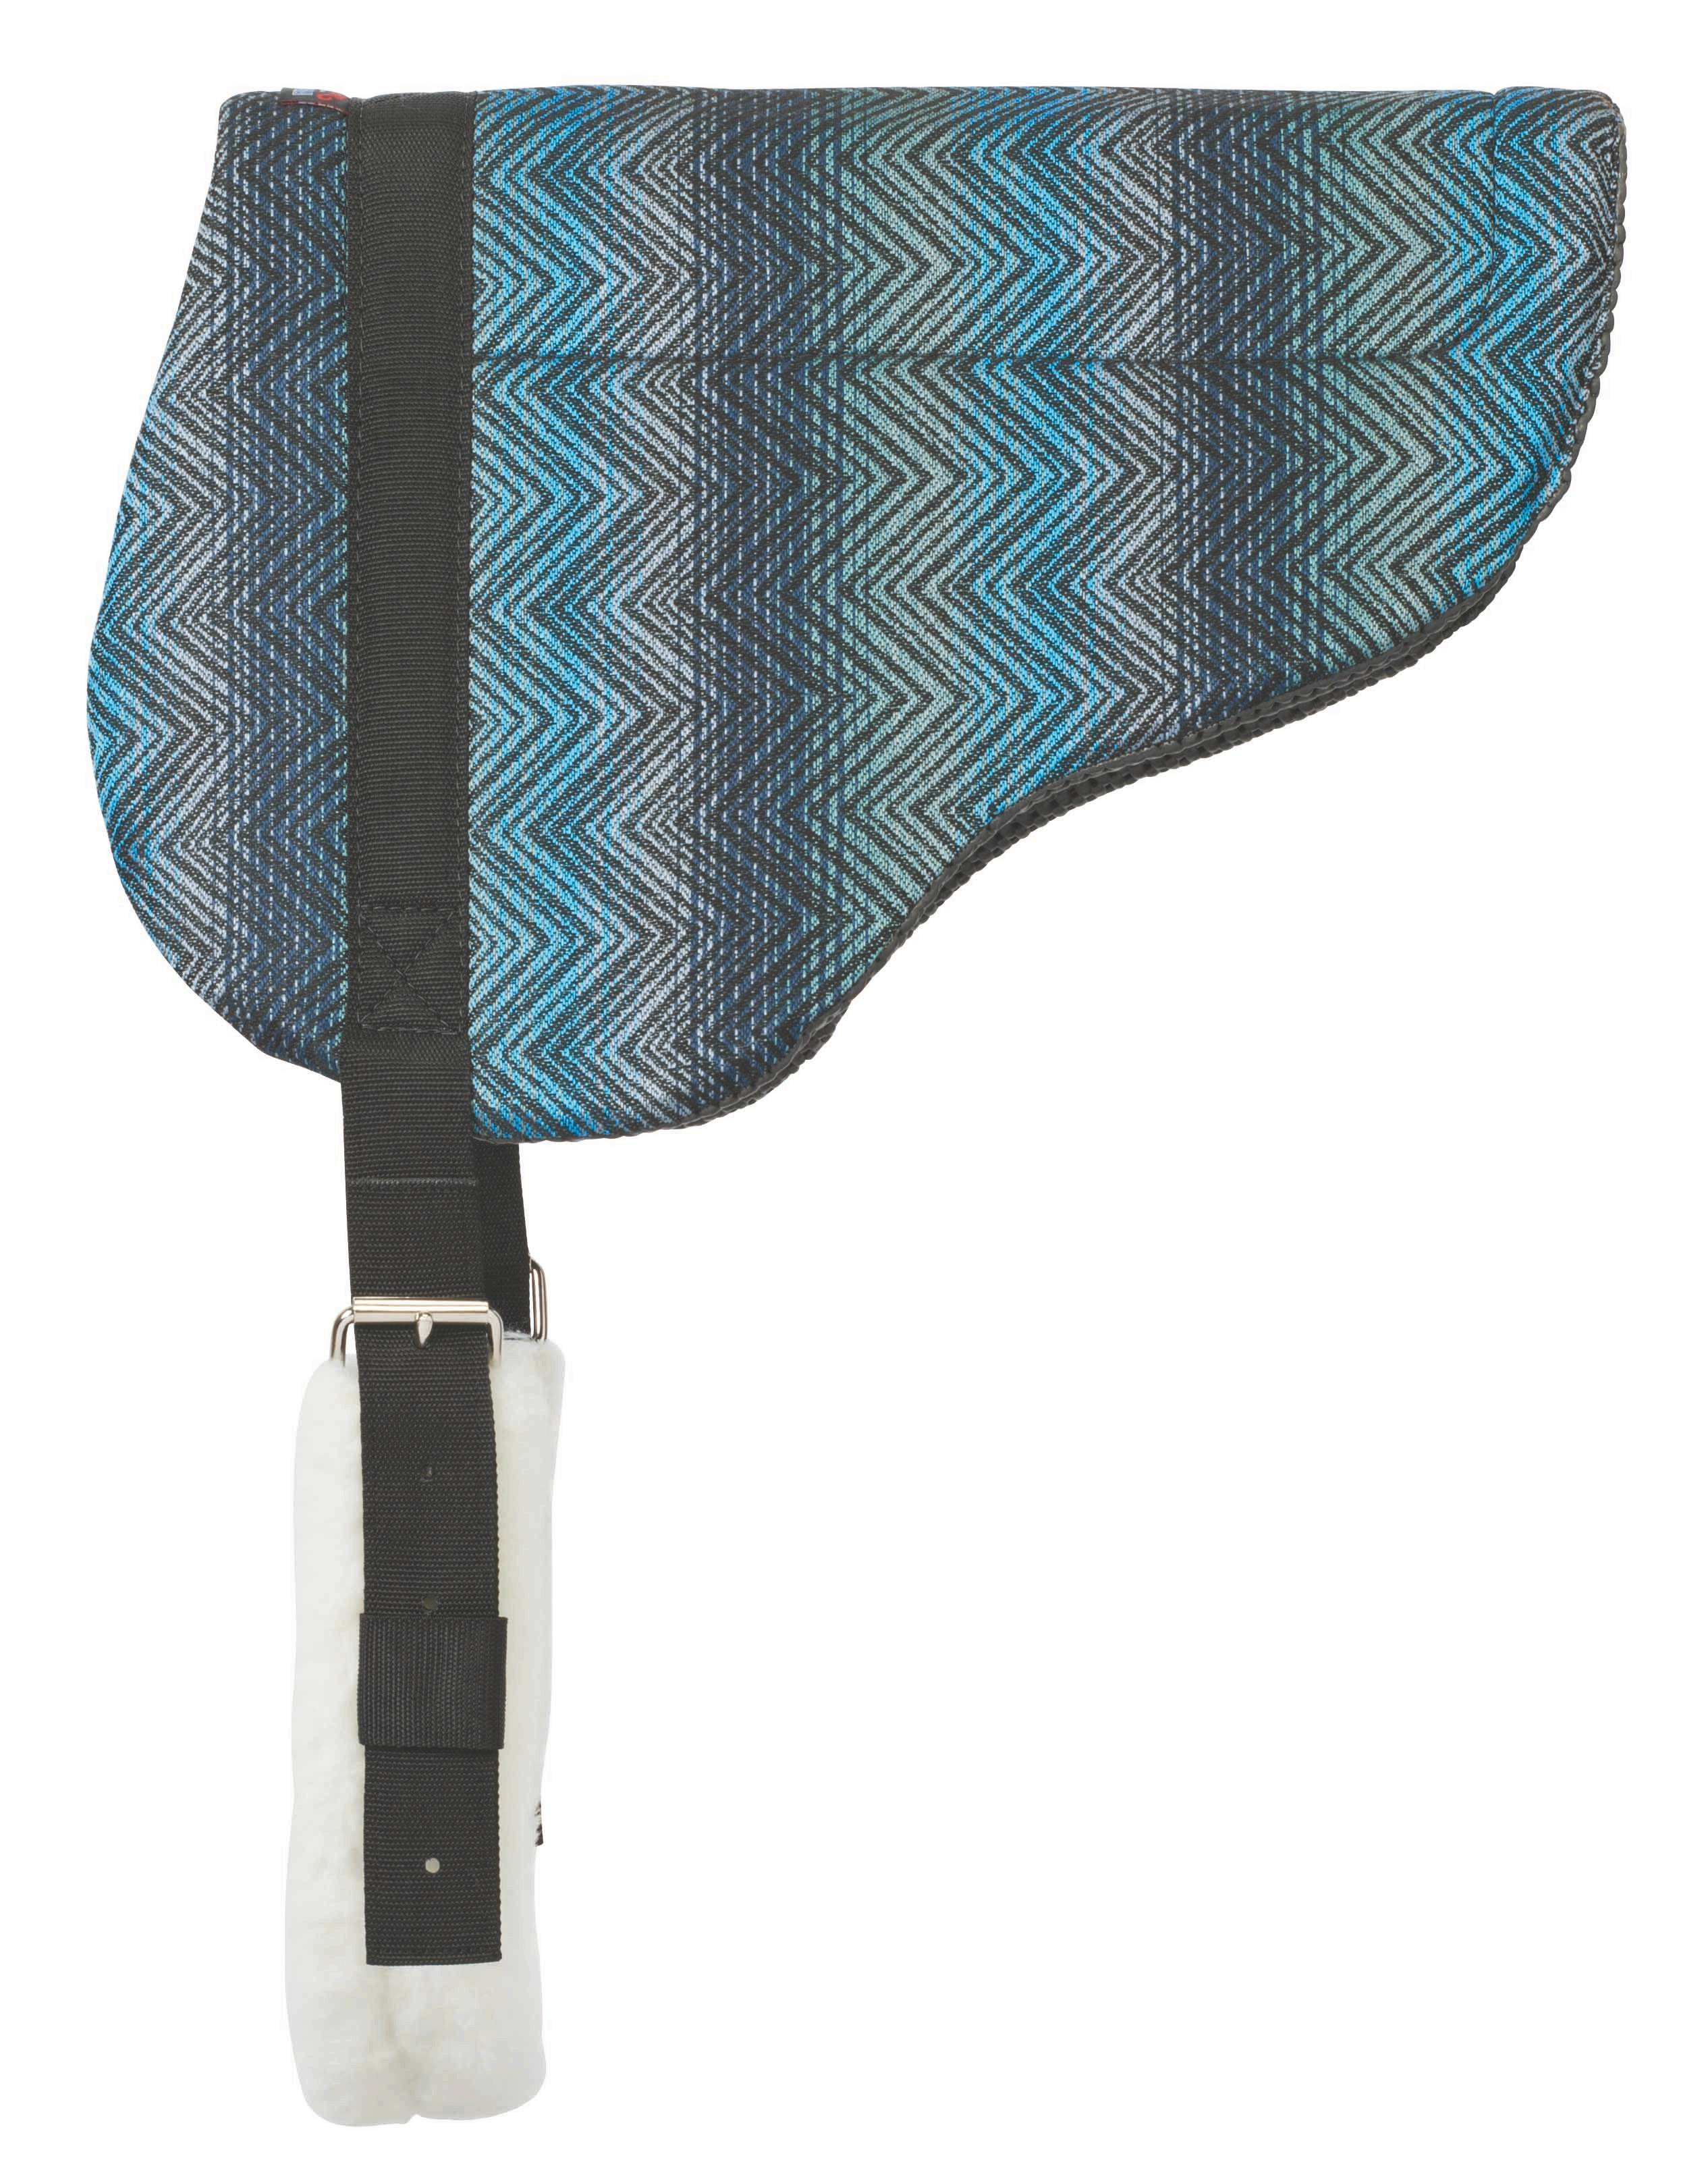 Weaver Herculon Tacky-Tack Bottom Bareback Pad - H25/H26